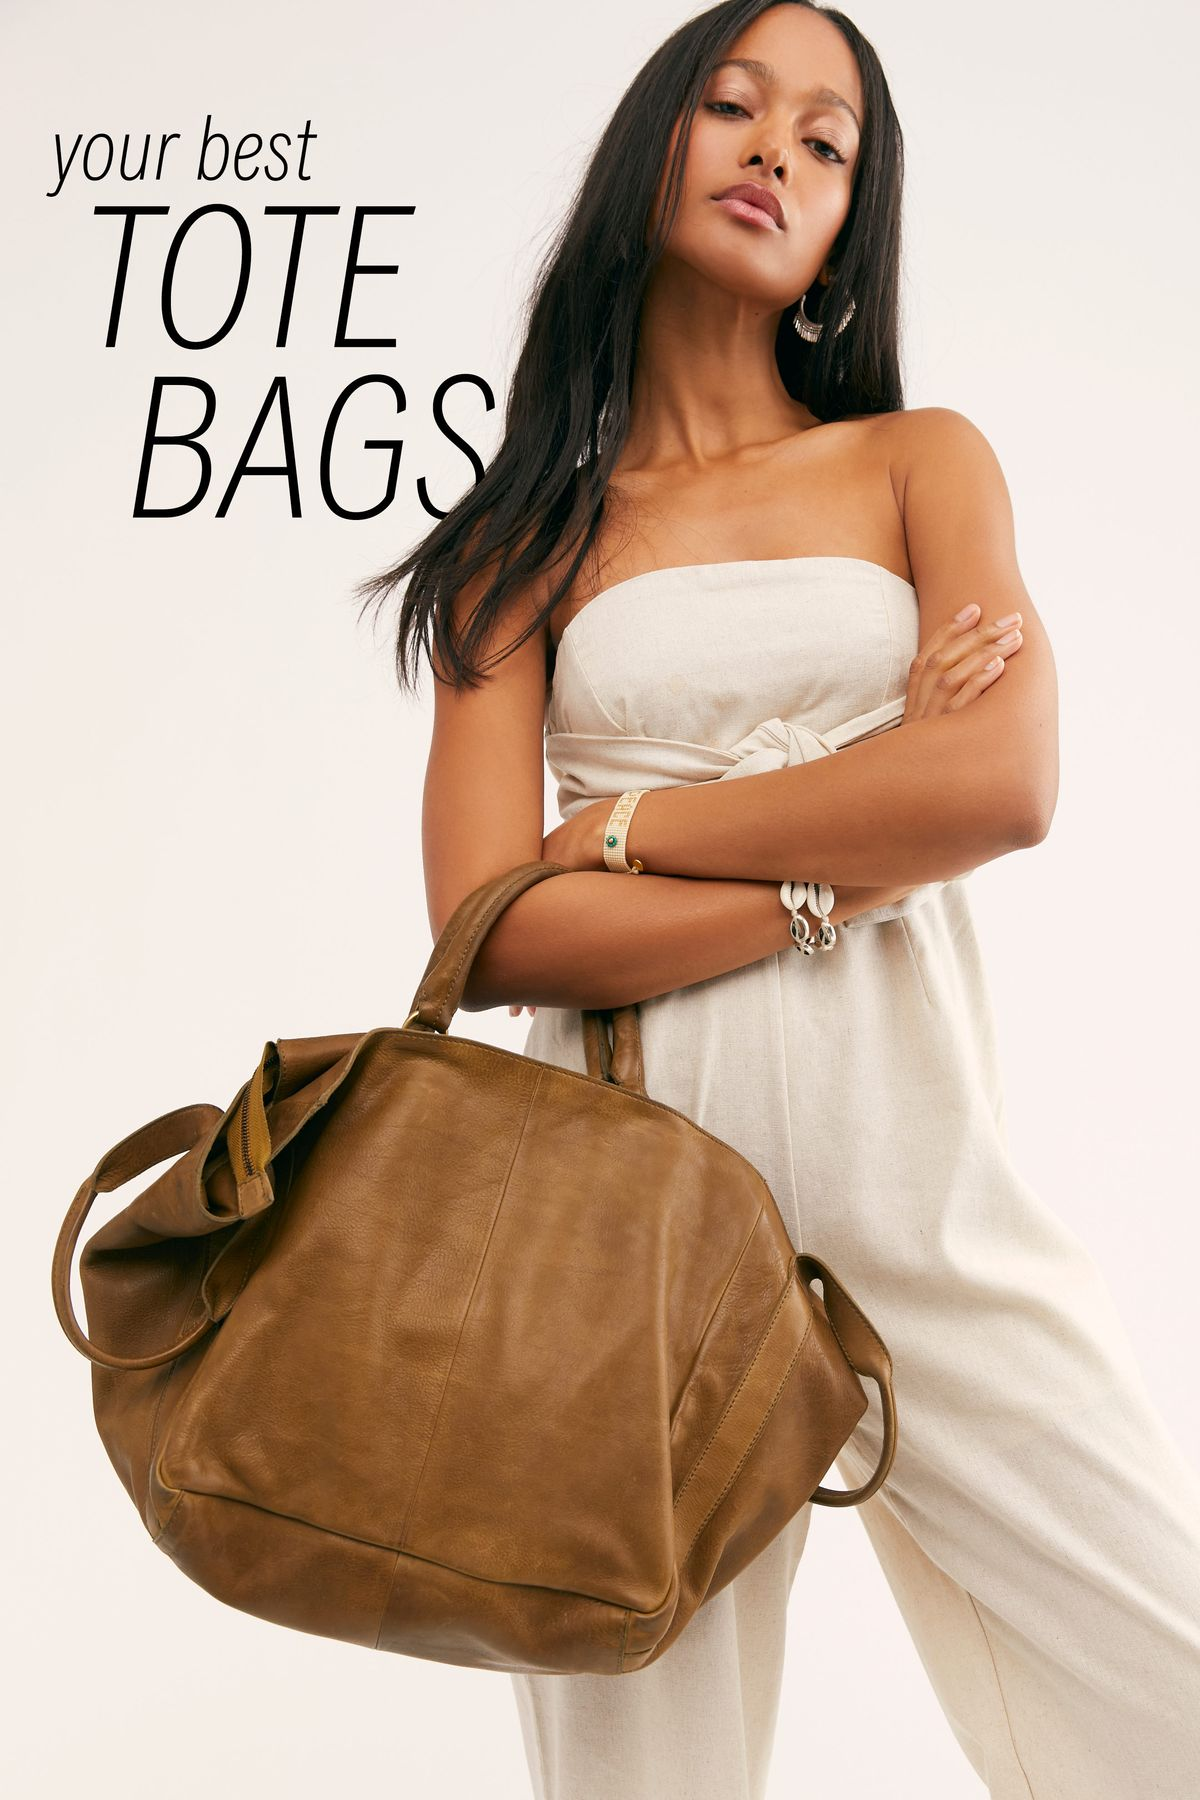 Your Best Tote Bags